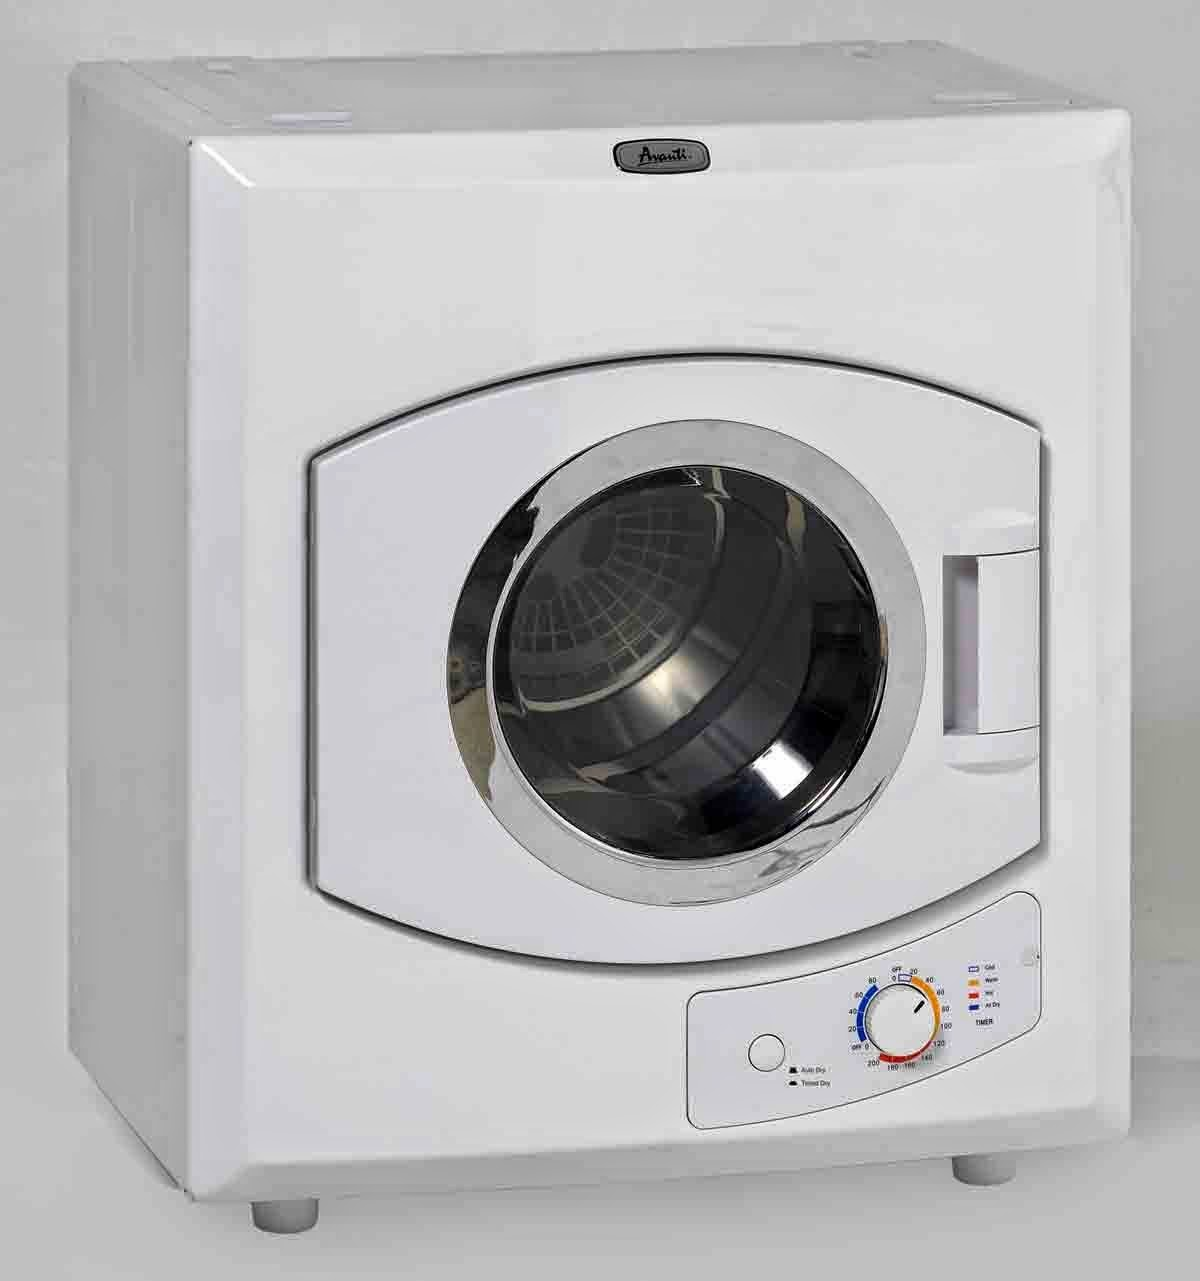 Avanti 110 Volt Automatic Dryer